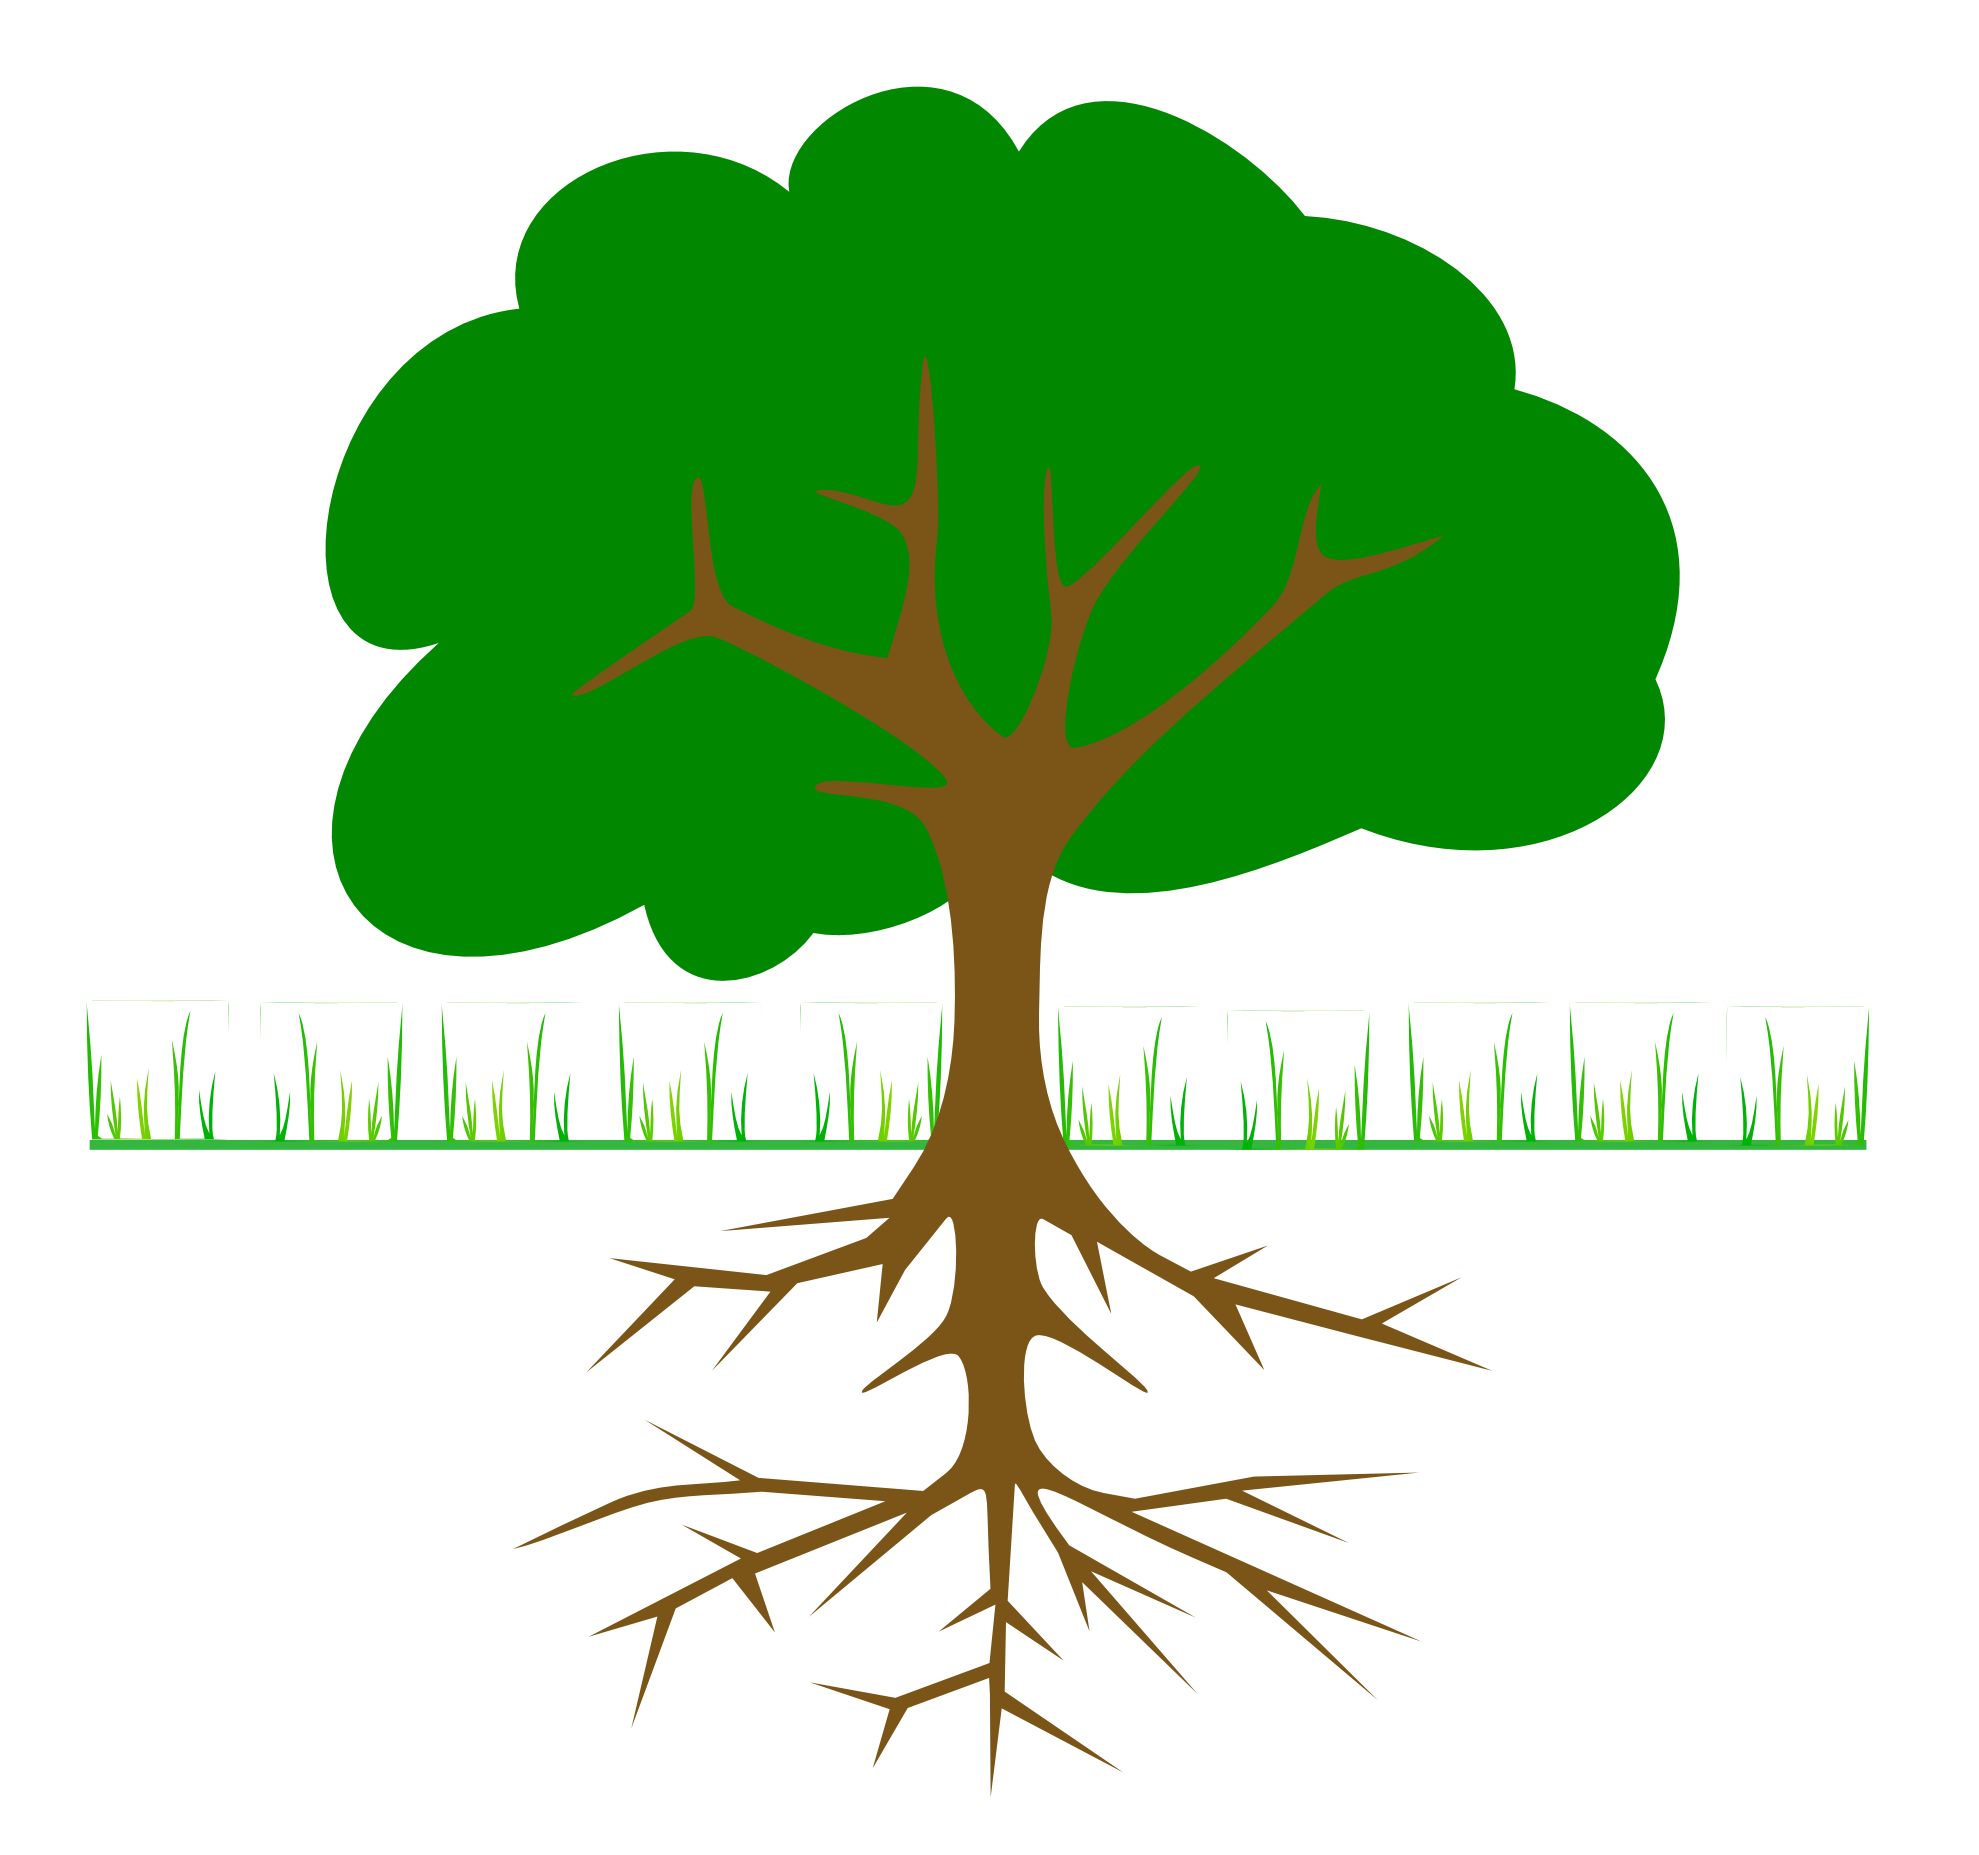 Tree seed clipart image transparent Plant With Roots Clipart | Clipart Panda - Free Clipart Images image transparent